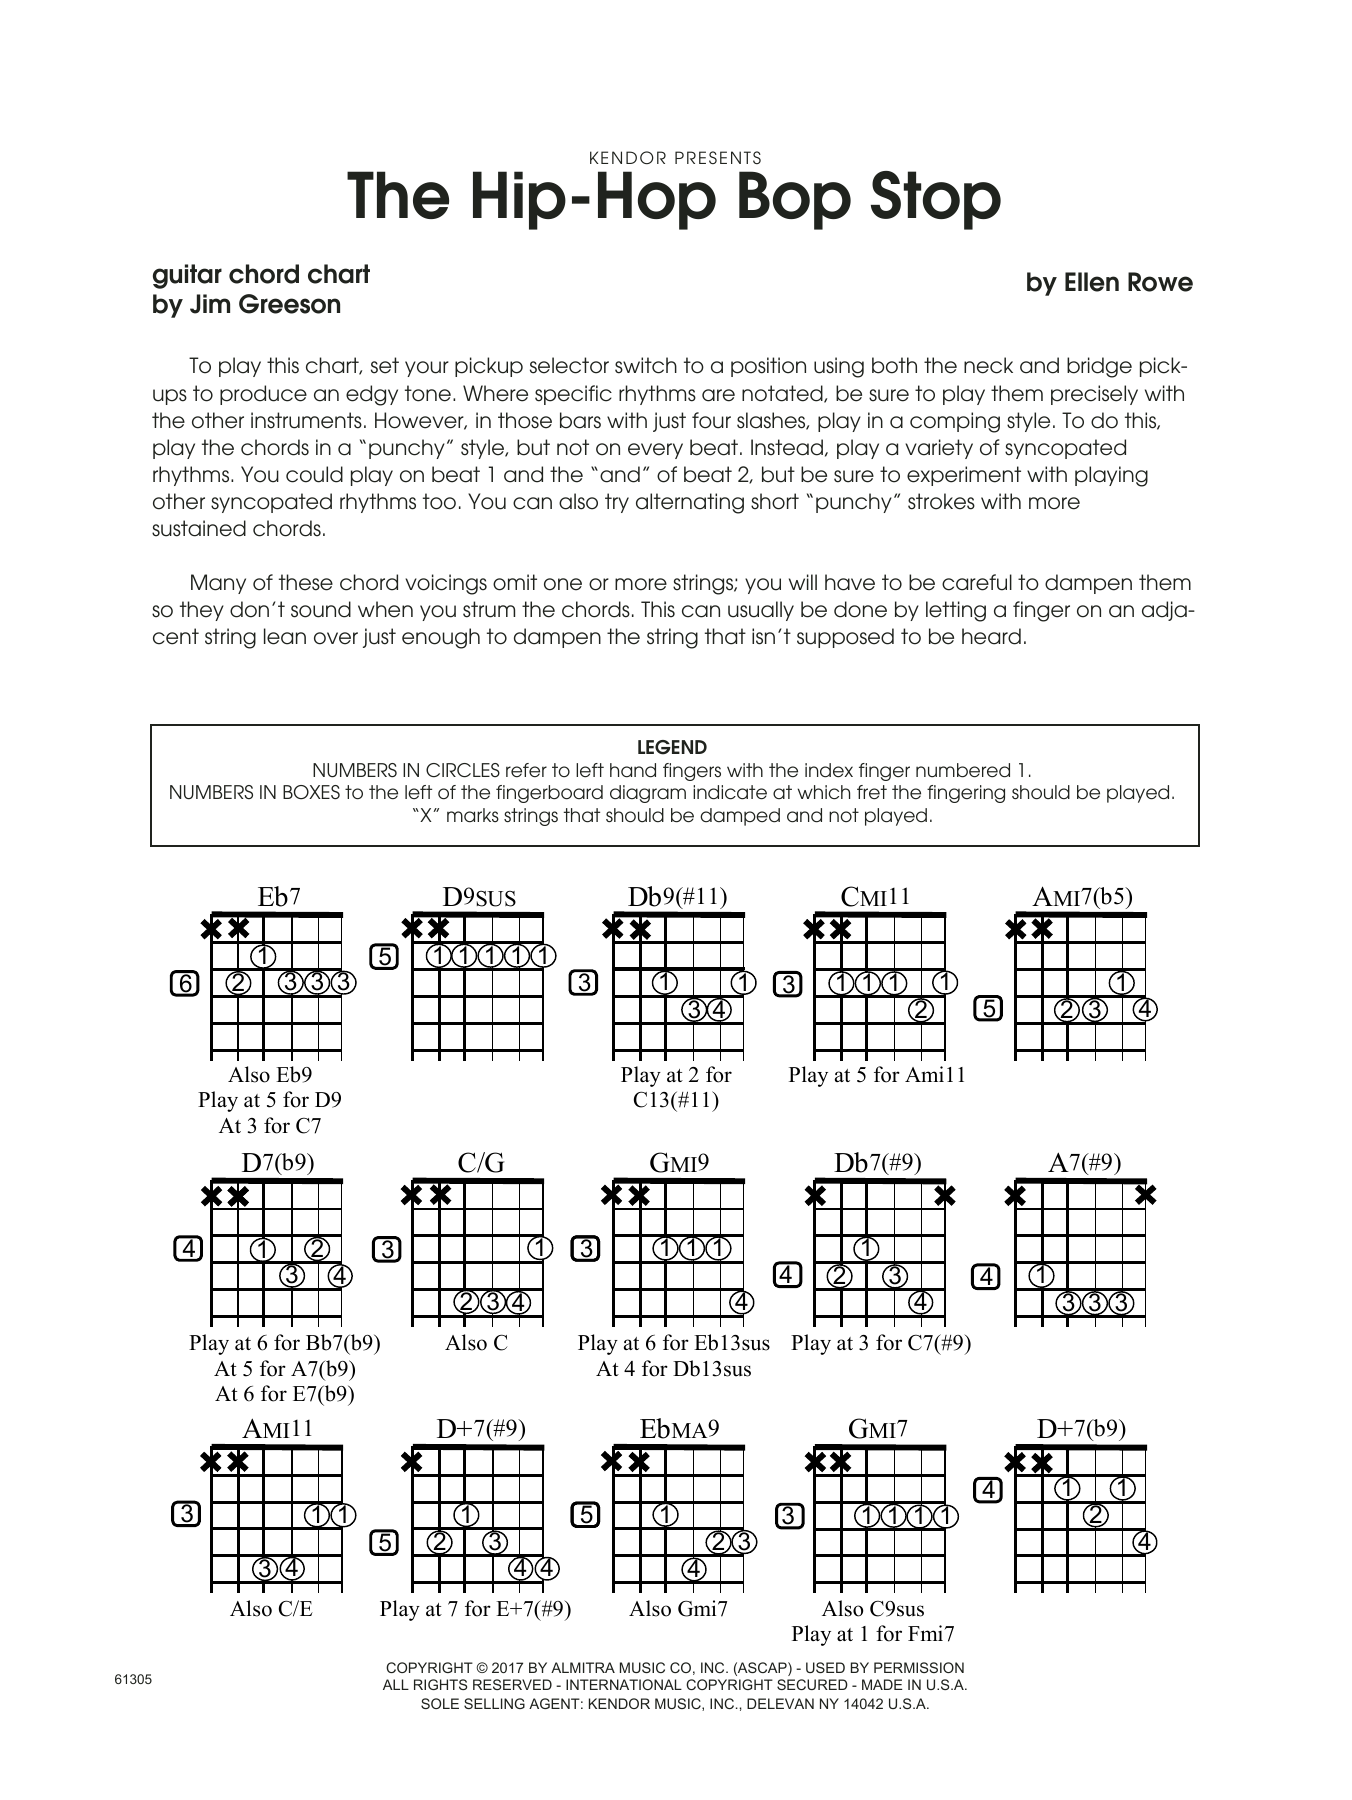 The Hip Hop Bop Stop Guitar Chord Chart At Stantons Sheet Music